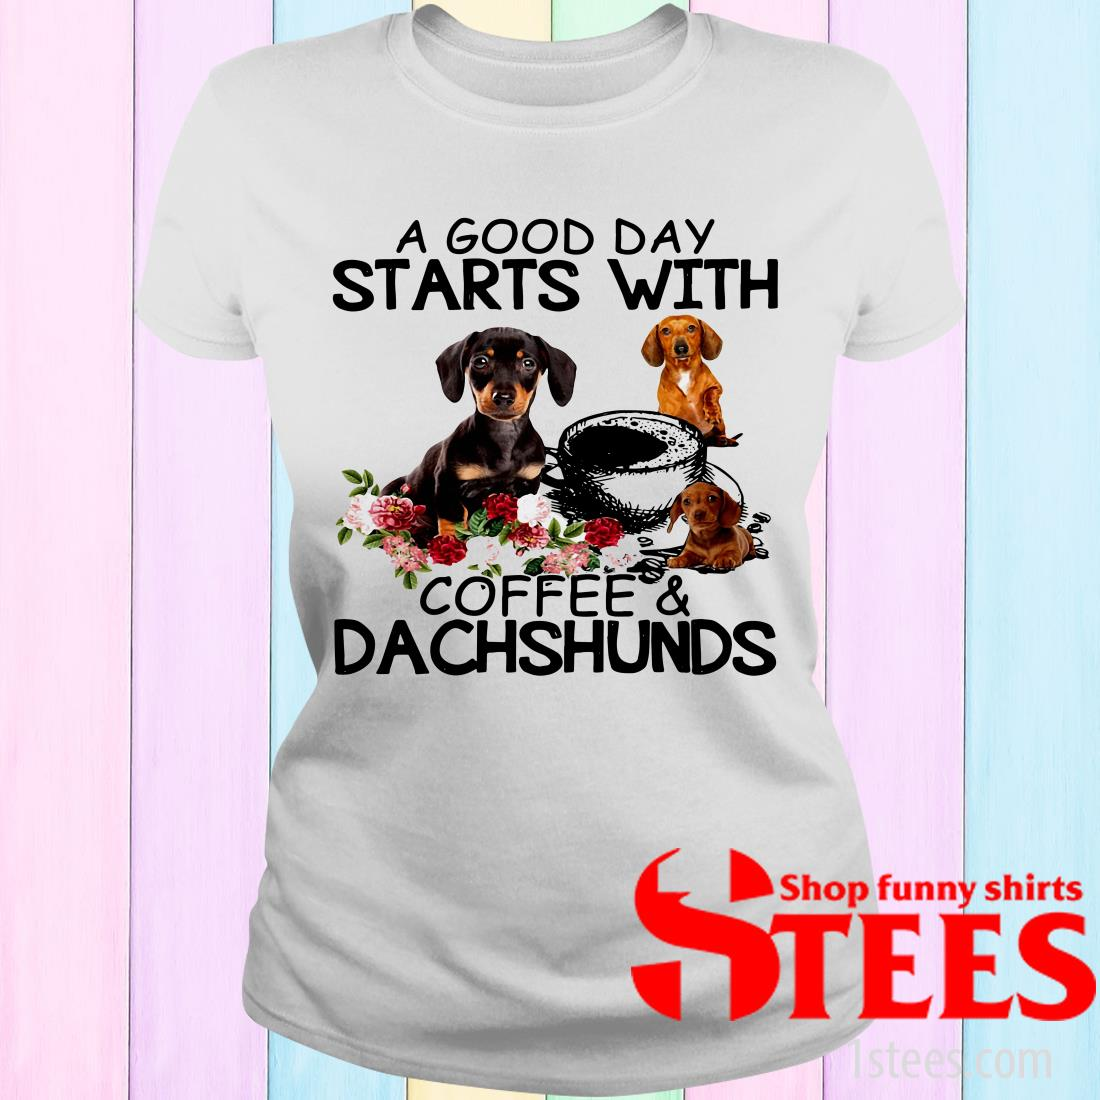 A Good Day Starts With Coffee And Dachshunds Dog Women's T-Shirt